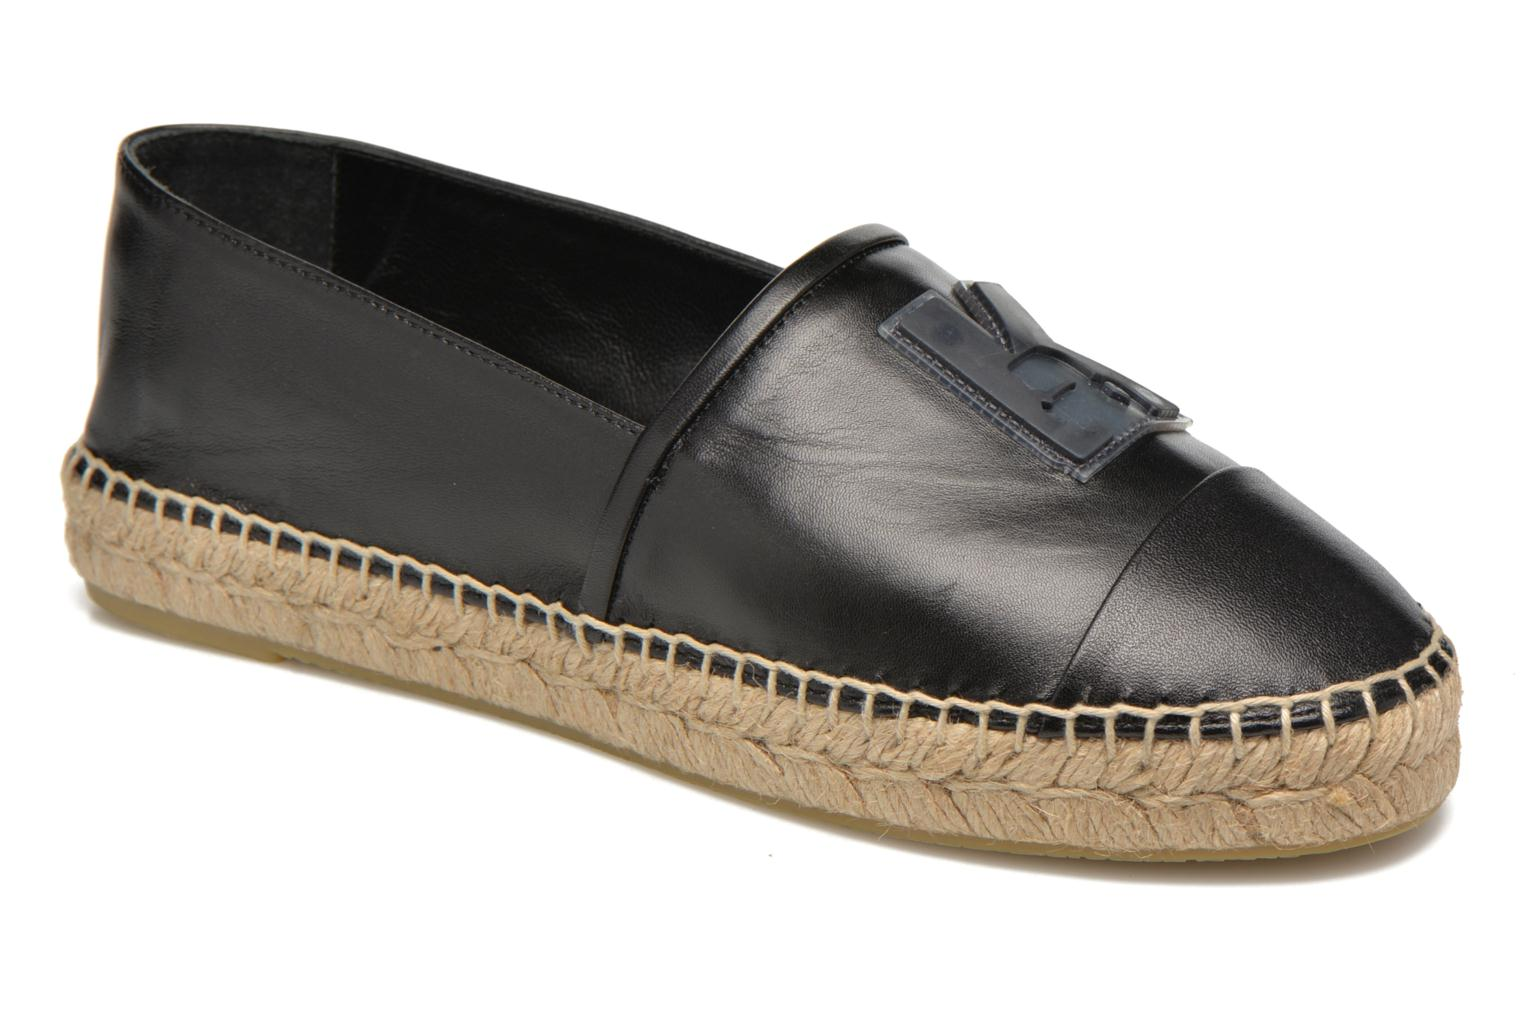 Marques Chaussure femme Karl Lagerfeld femme Karl Leather Espadrille A115 Champage